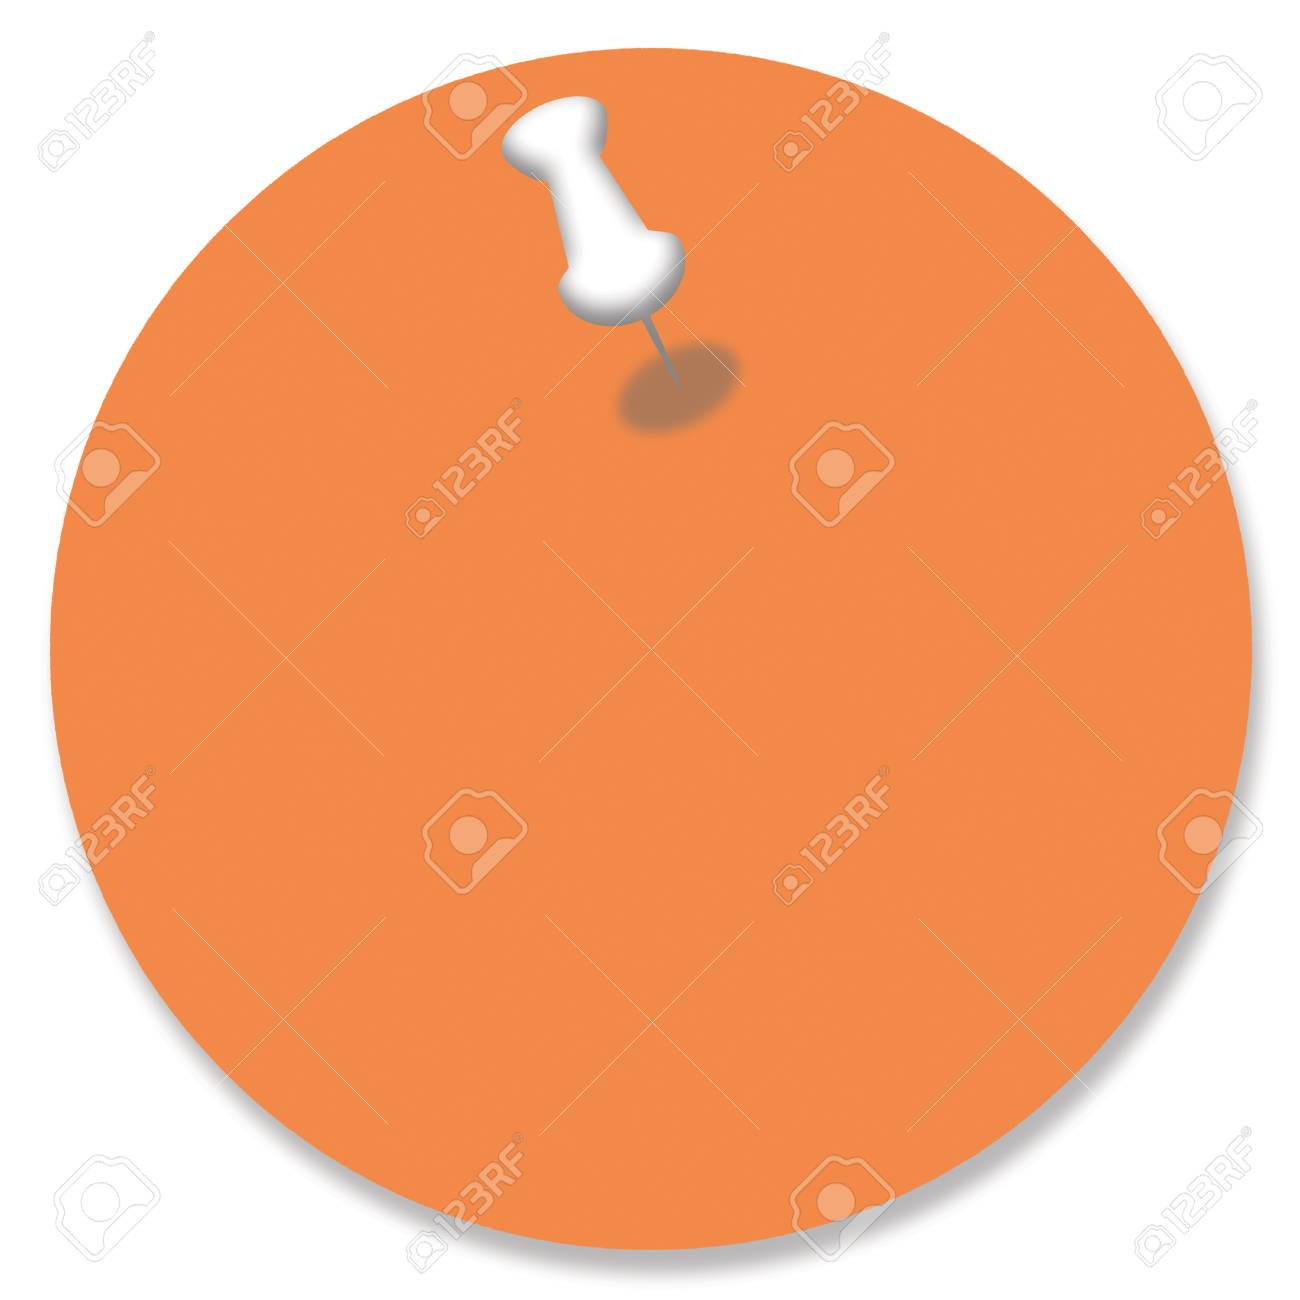 orange circular paper background with a pin stock photo picture and